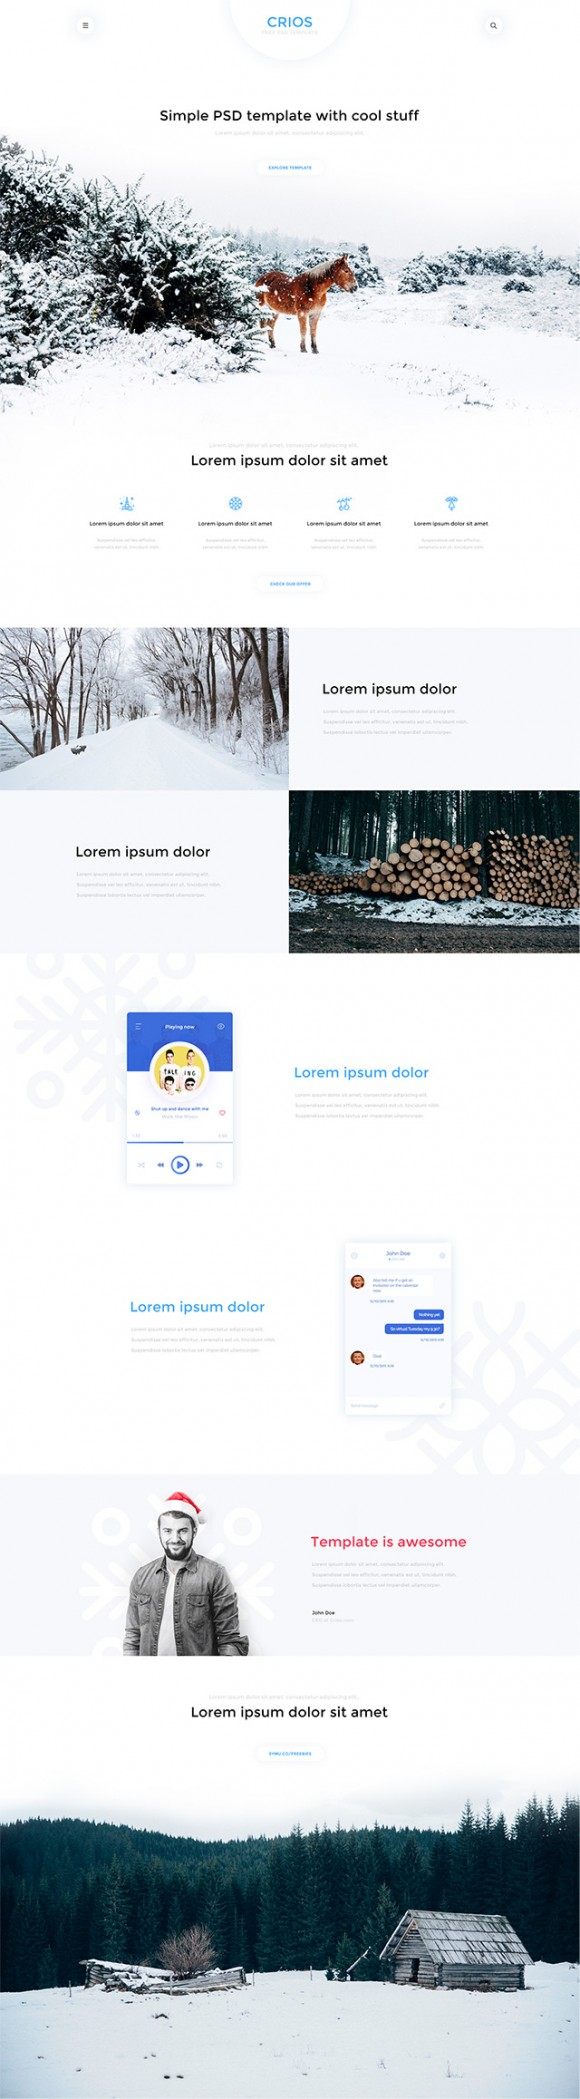 Crios - Free PSD website template - Full image